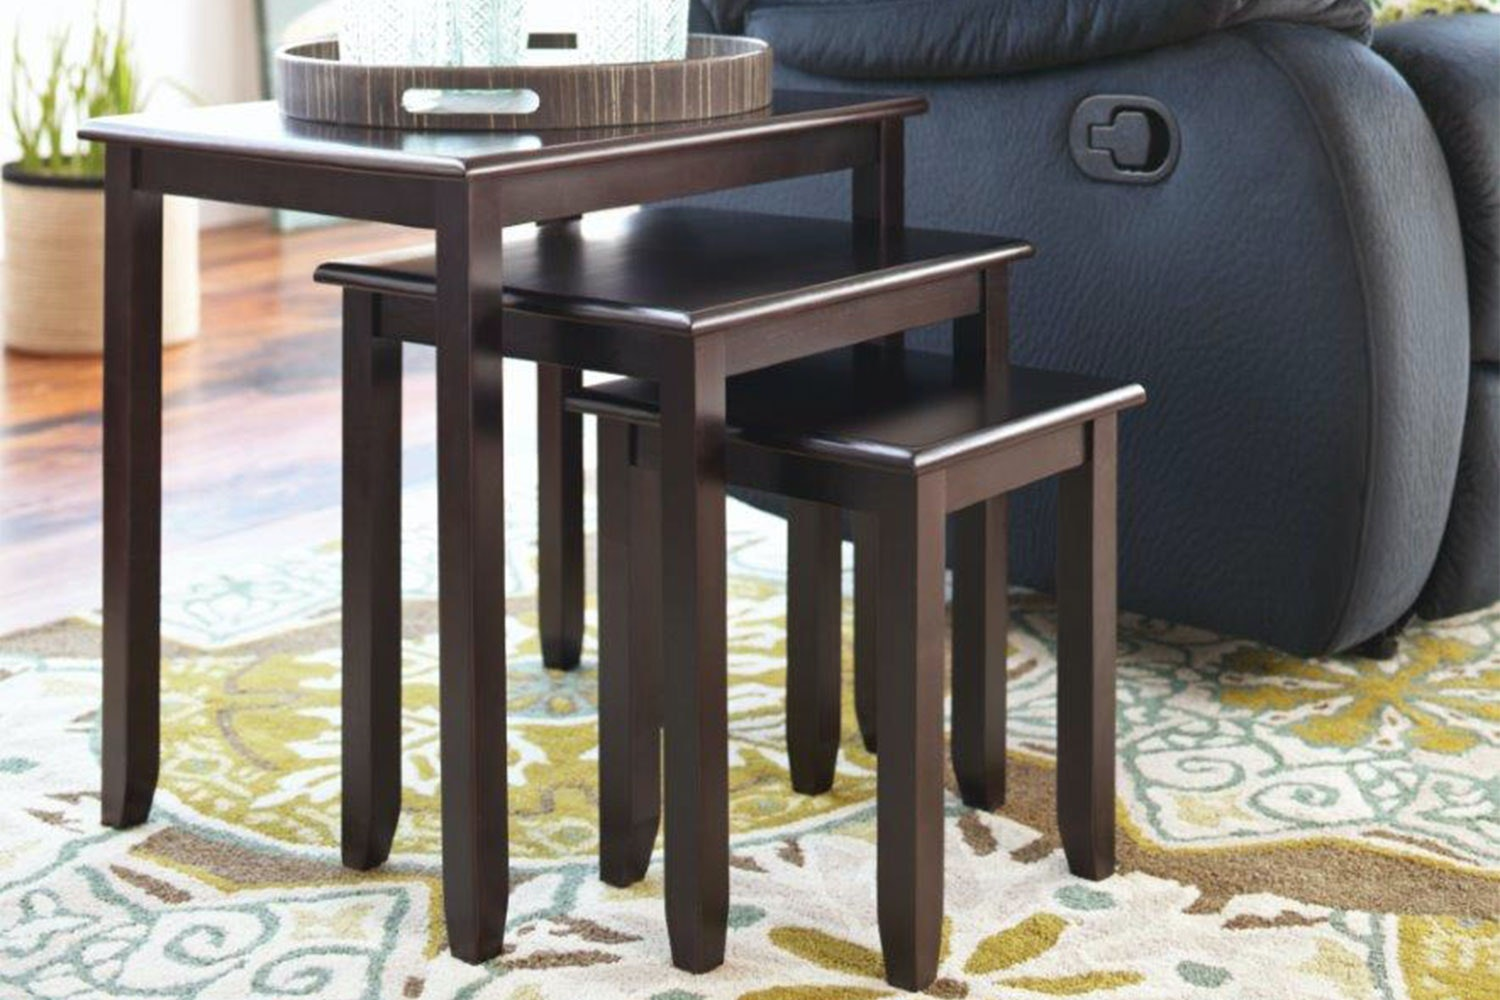 Wenge Robins Nest of 3 Tables by Nero Furniture